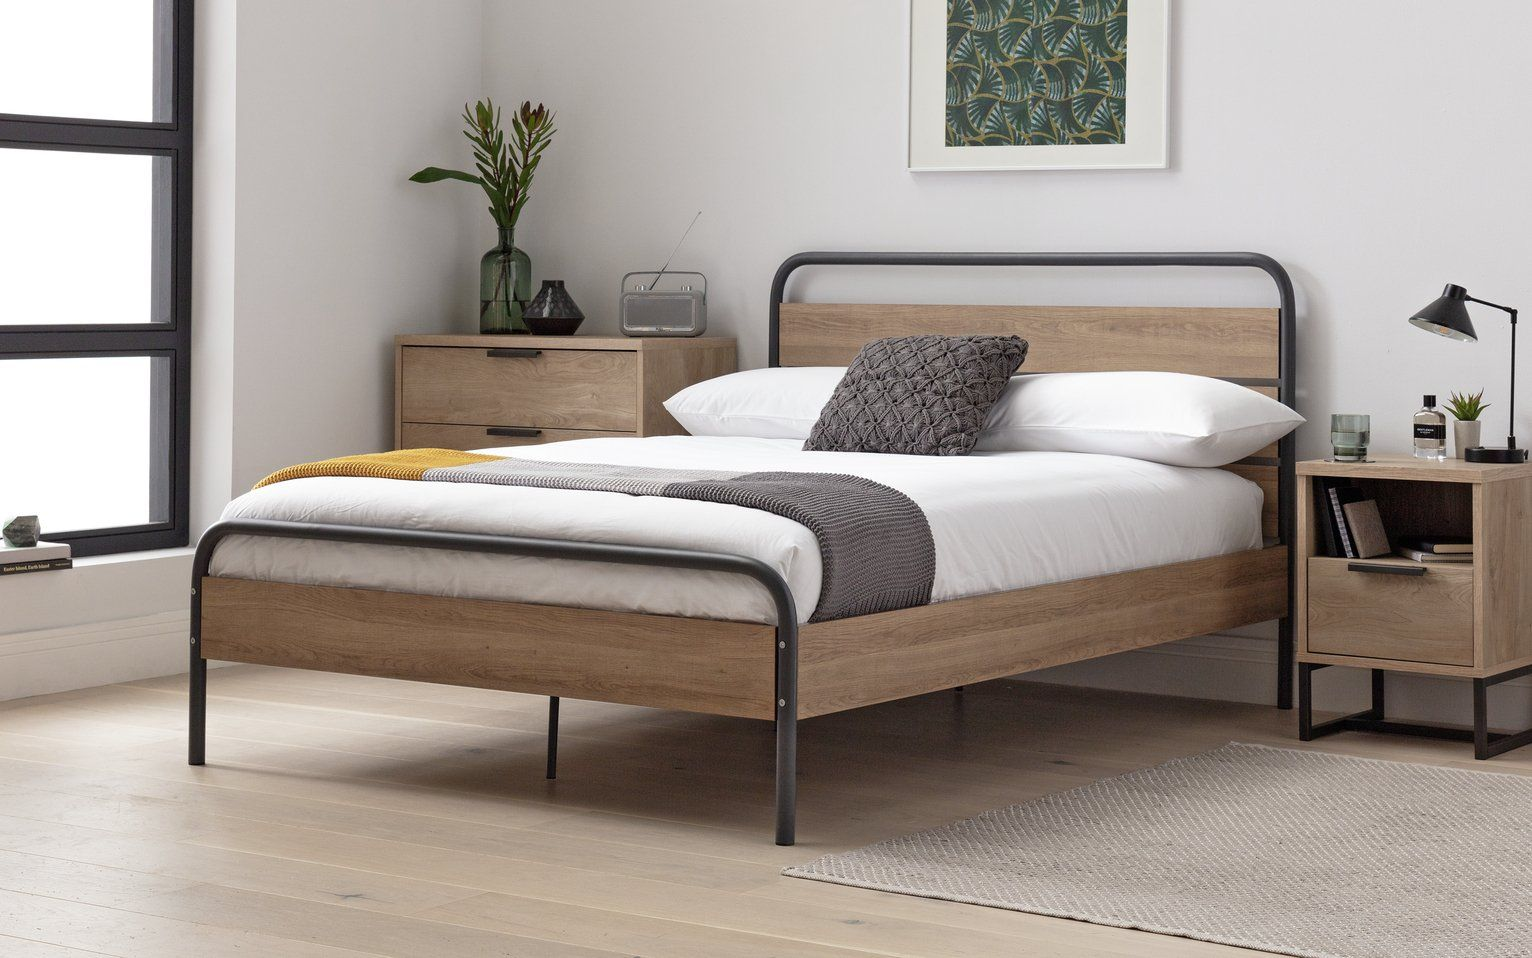 Buy Argos Home Industrial Small Double Bed Frame Grey